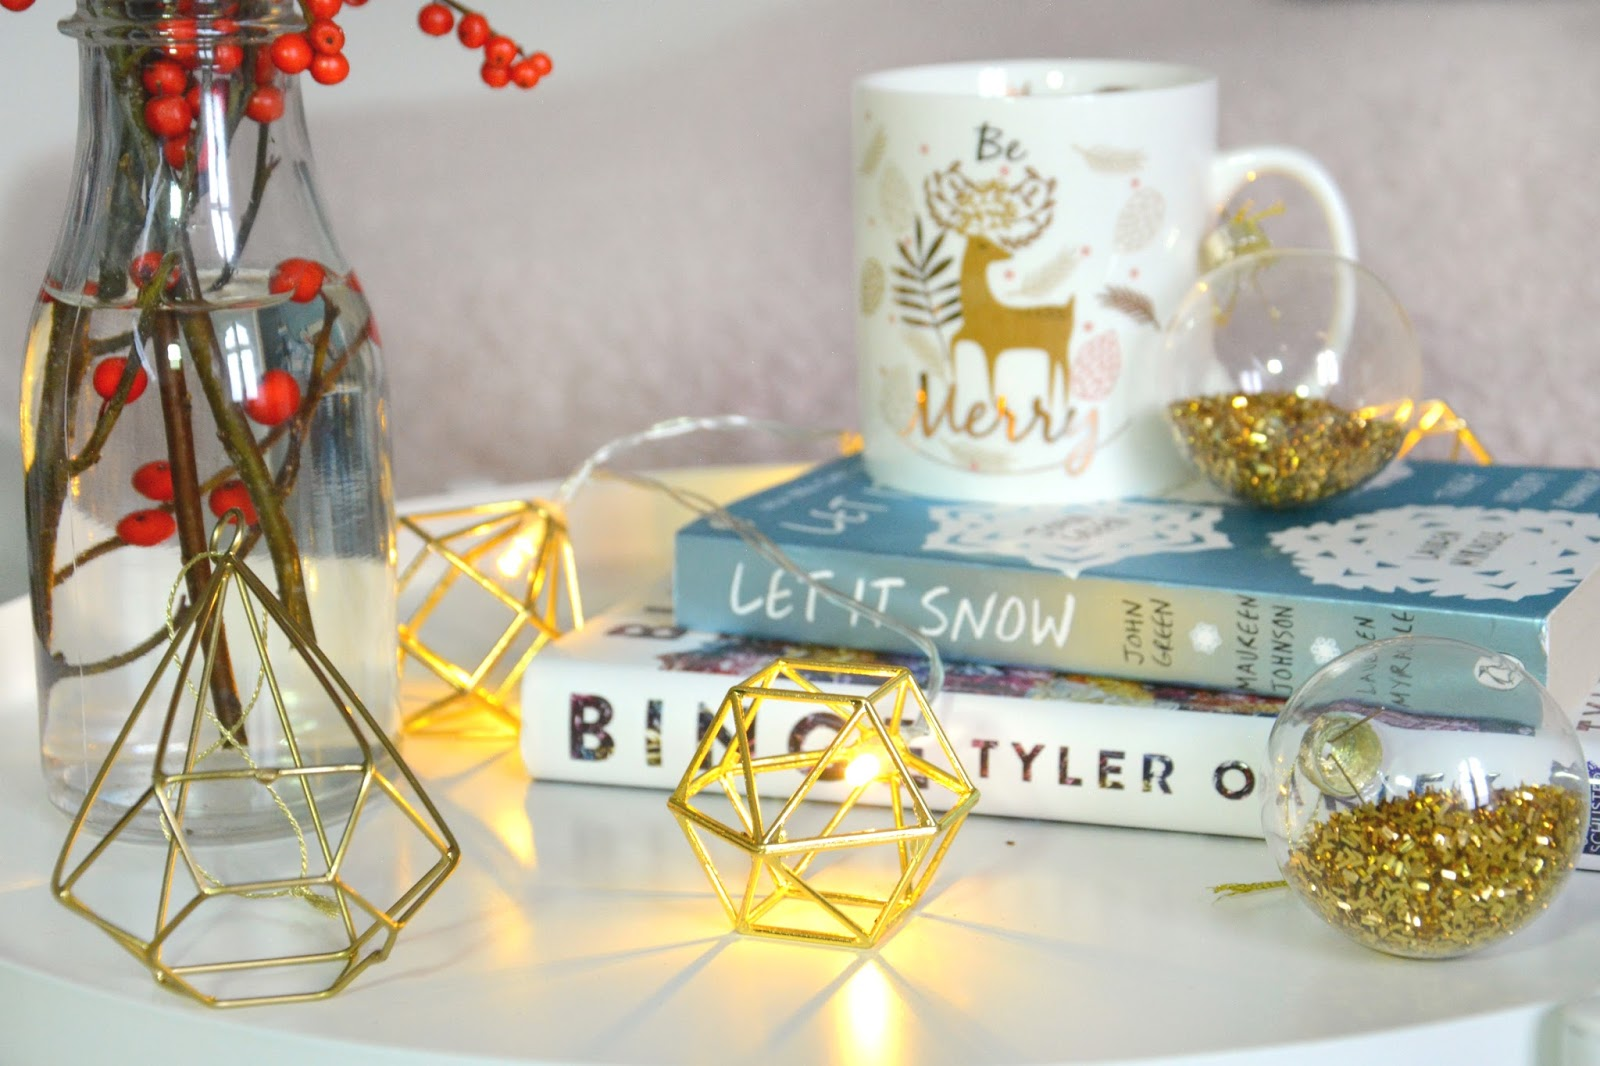 Binge Tyler Oakley, John Green Let It Snow; Baubles; Geode Fairy Lights, Christmas Mug